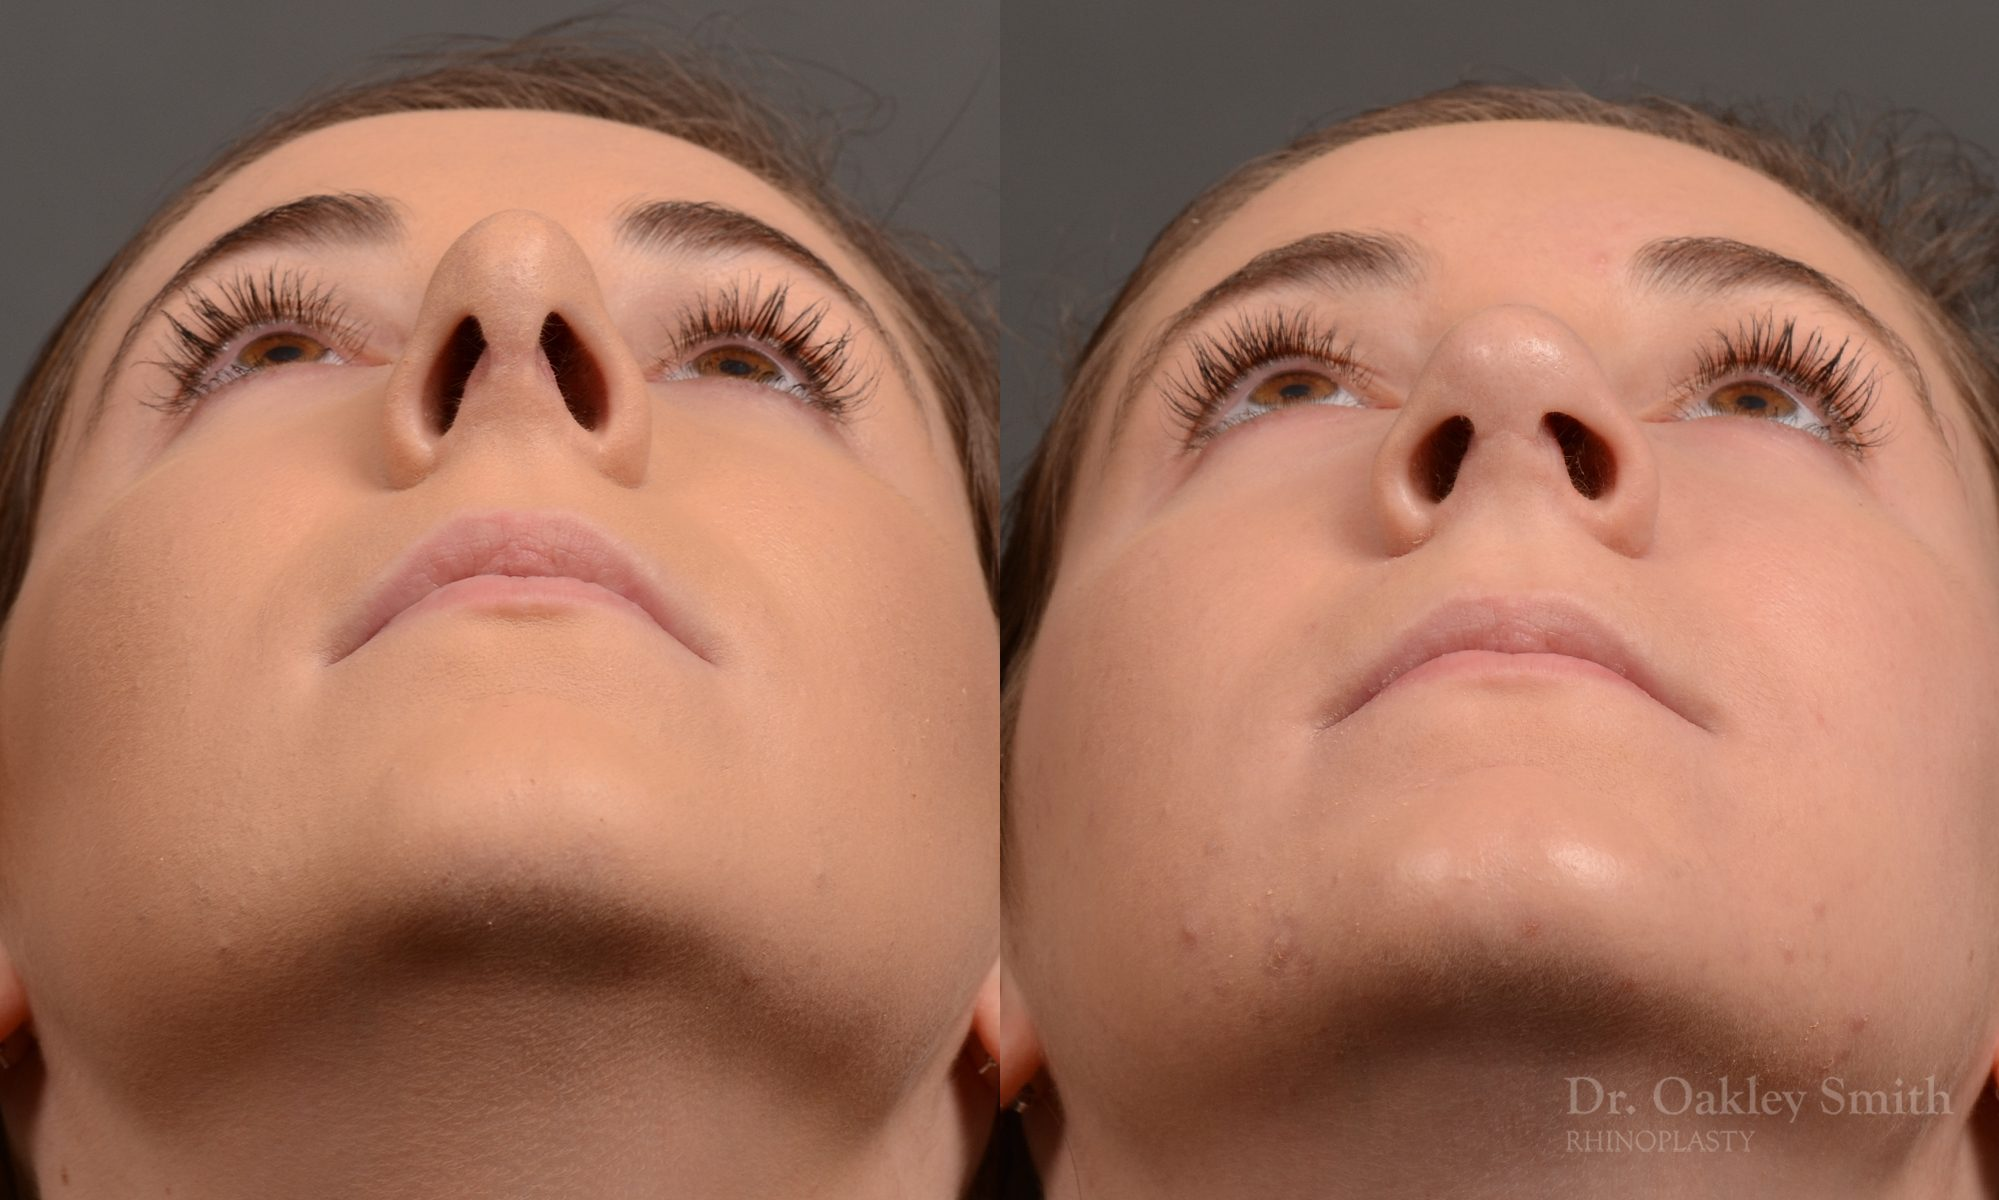 Rhinoplasty - Rhinoplasty Before and After Case 366